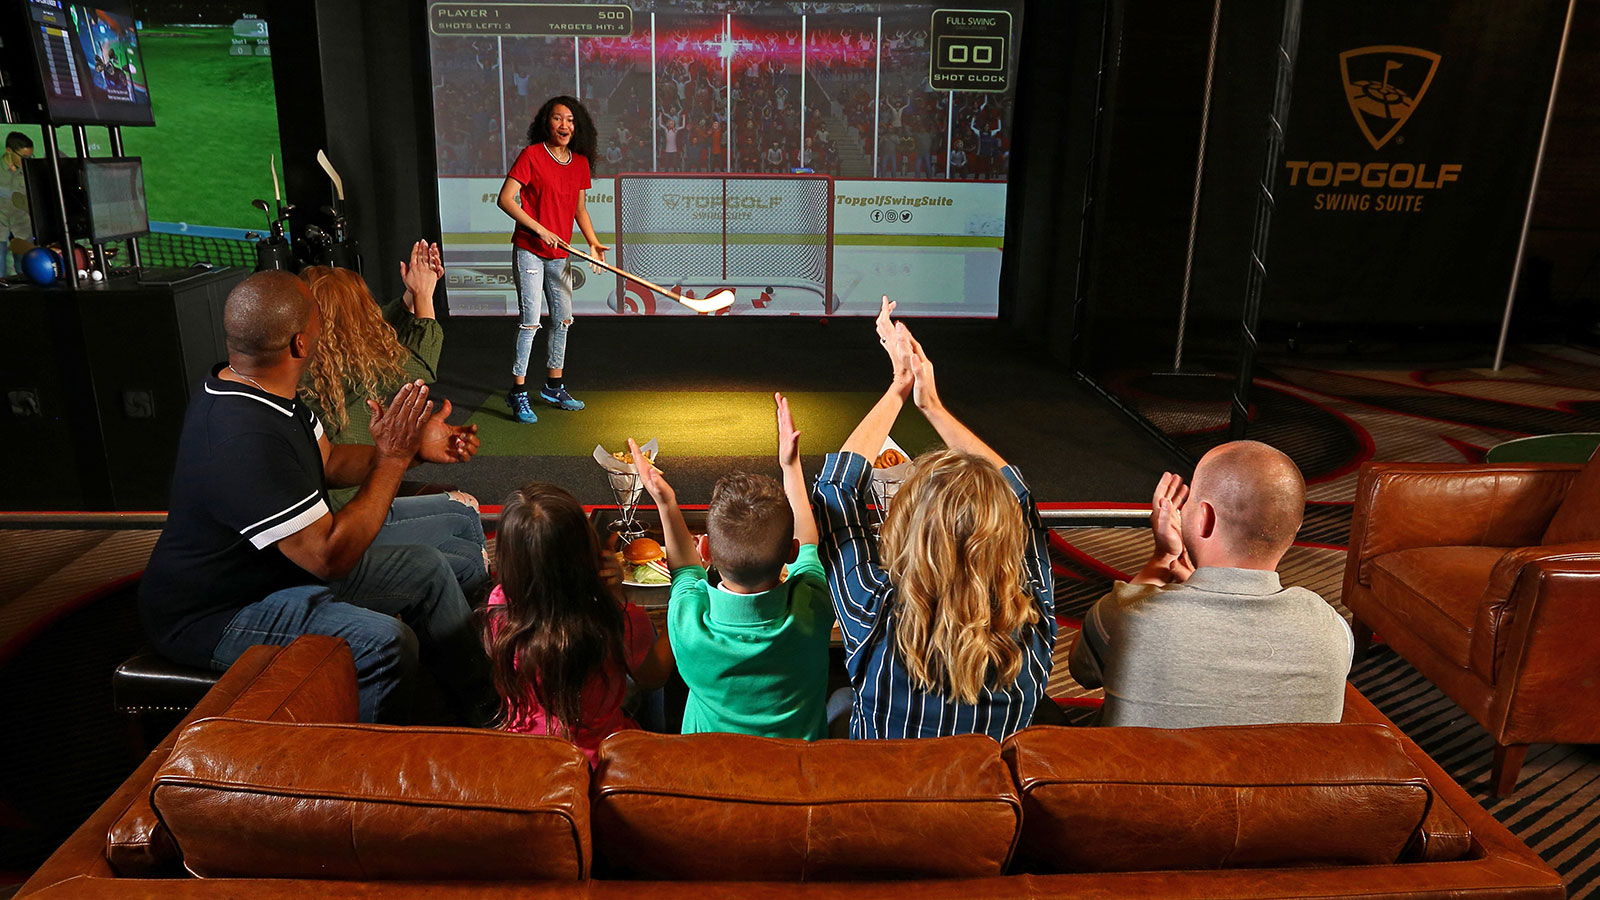 Group of adults and children cheer on woman playing virtual hockey with TOPGOLF SWING SUITE